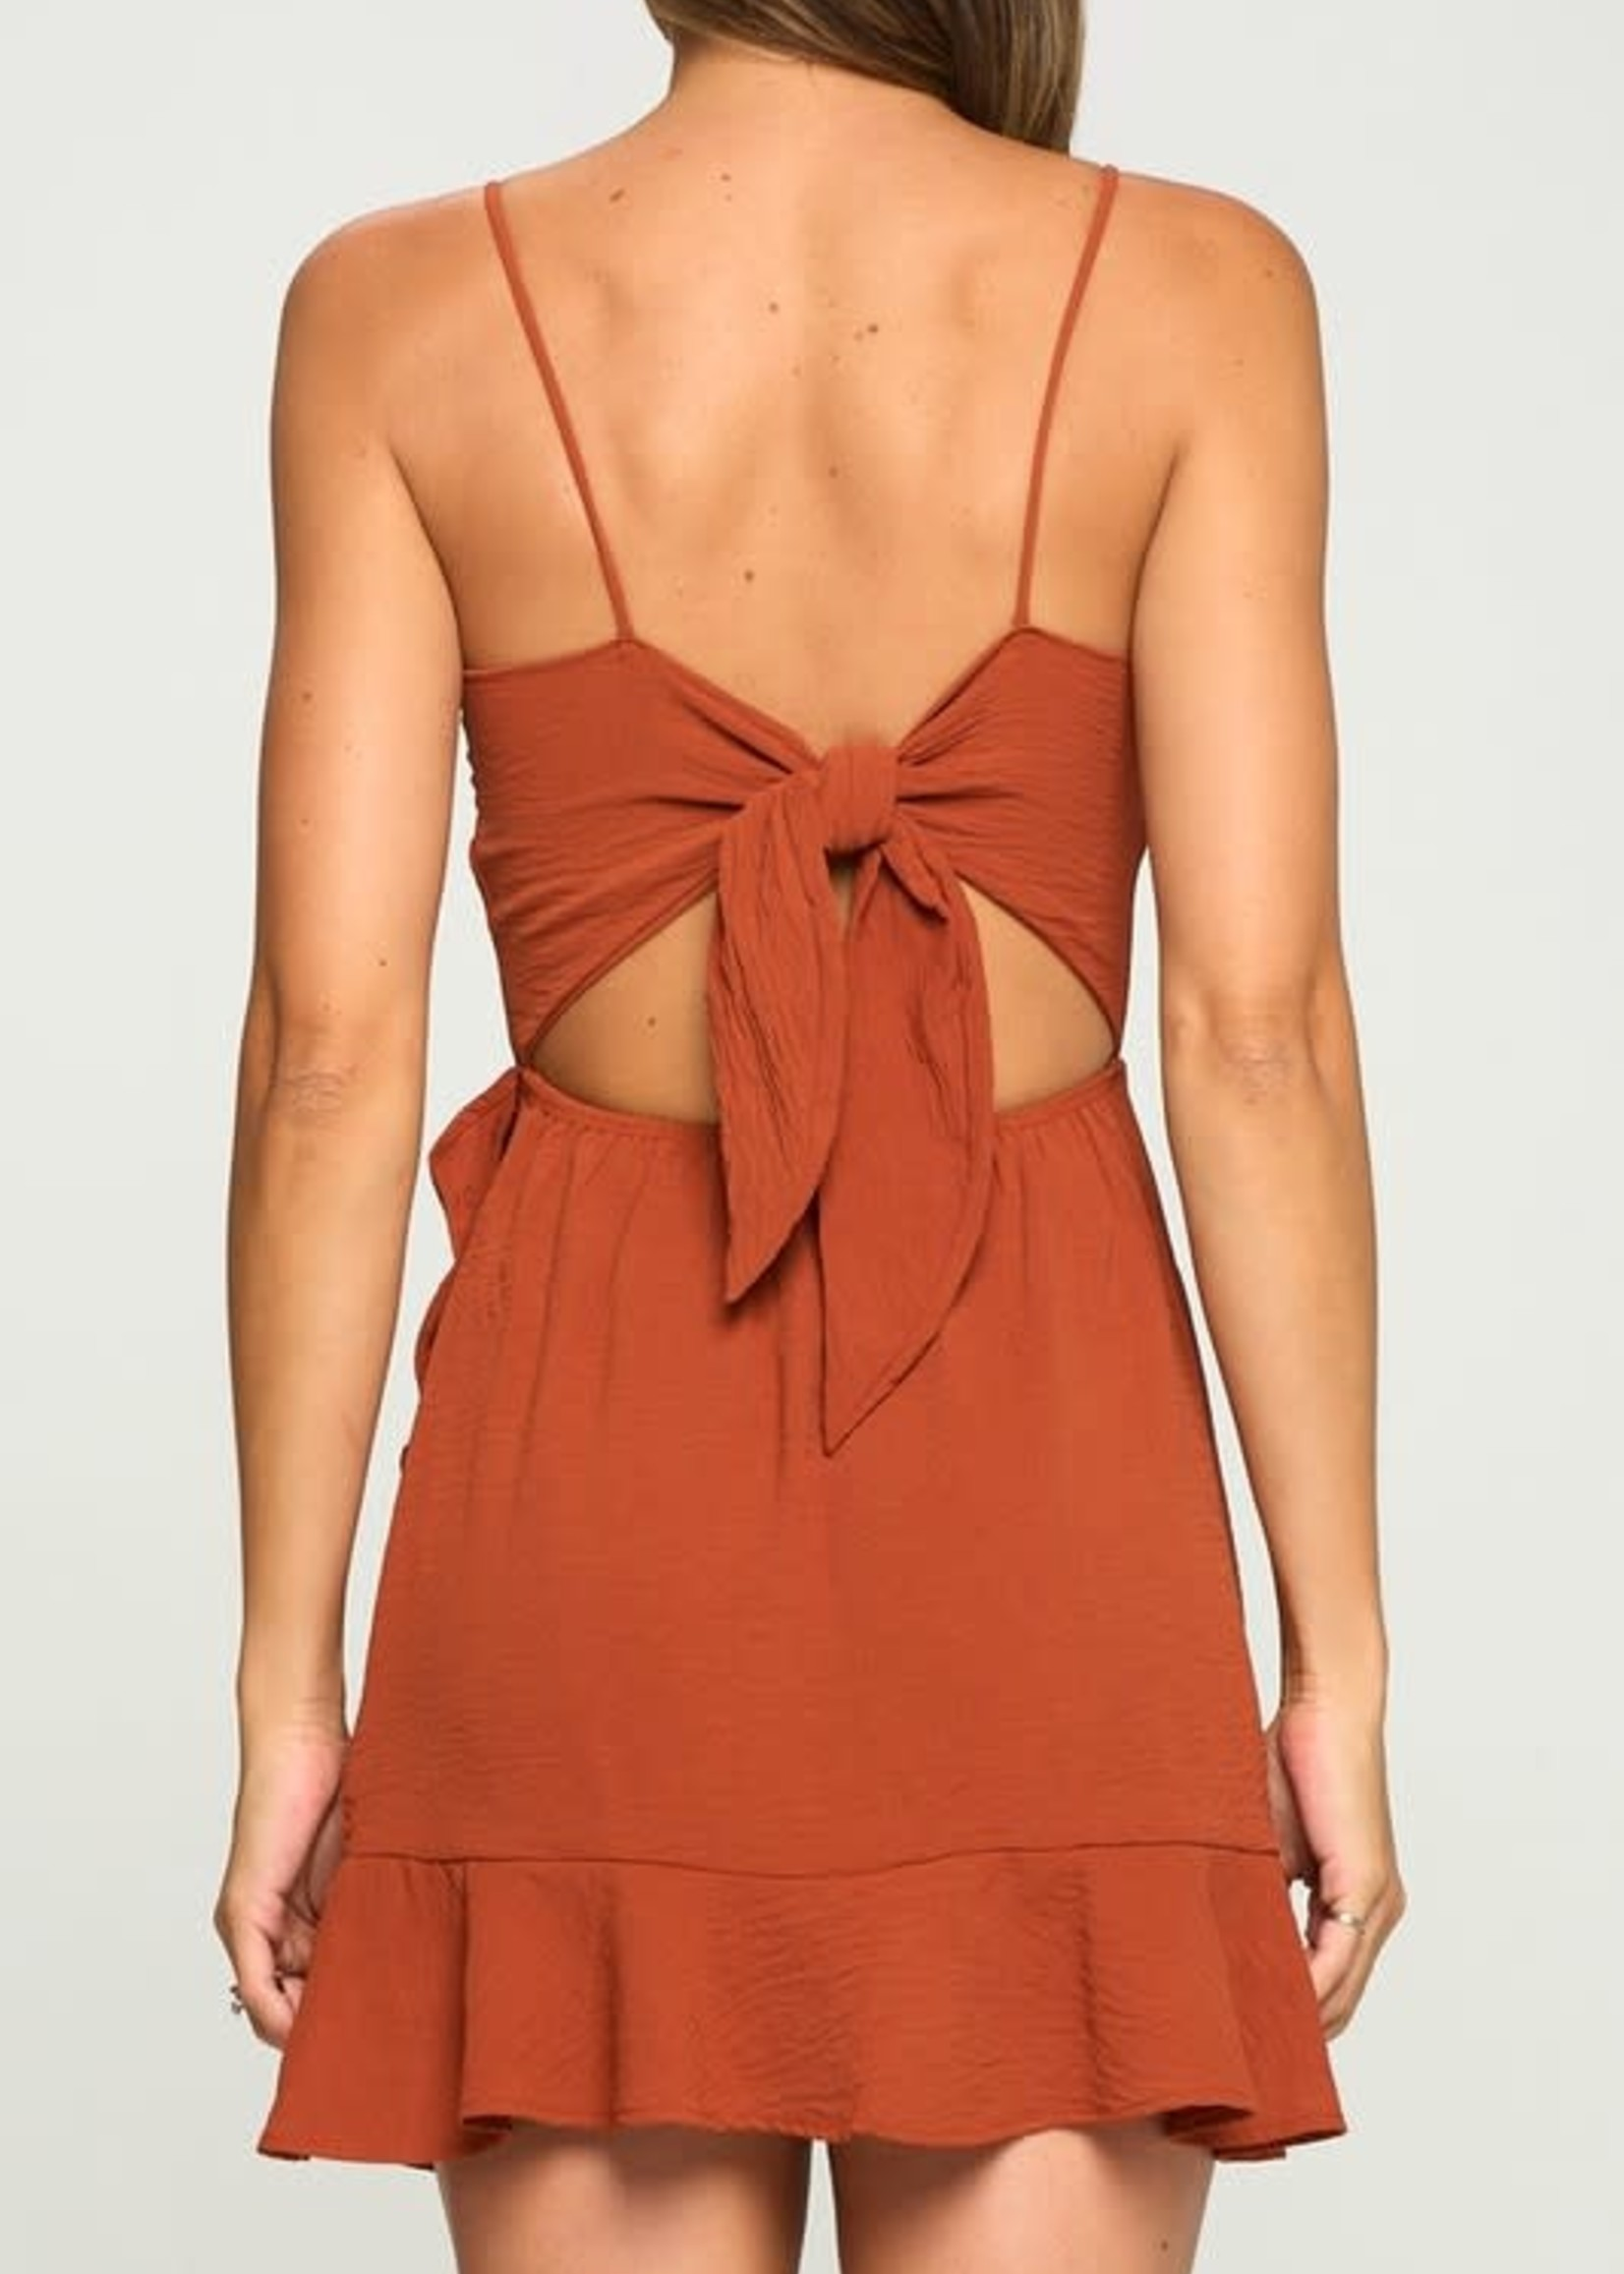 Fall For The Moment Rust Ruffle Dress